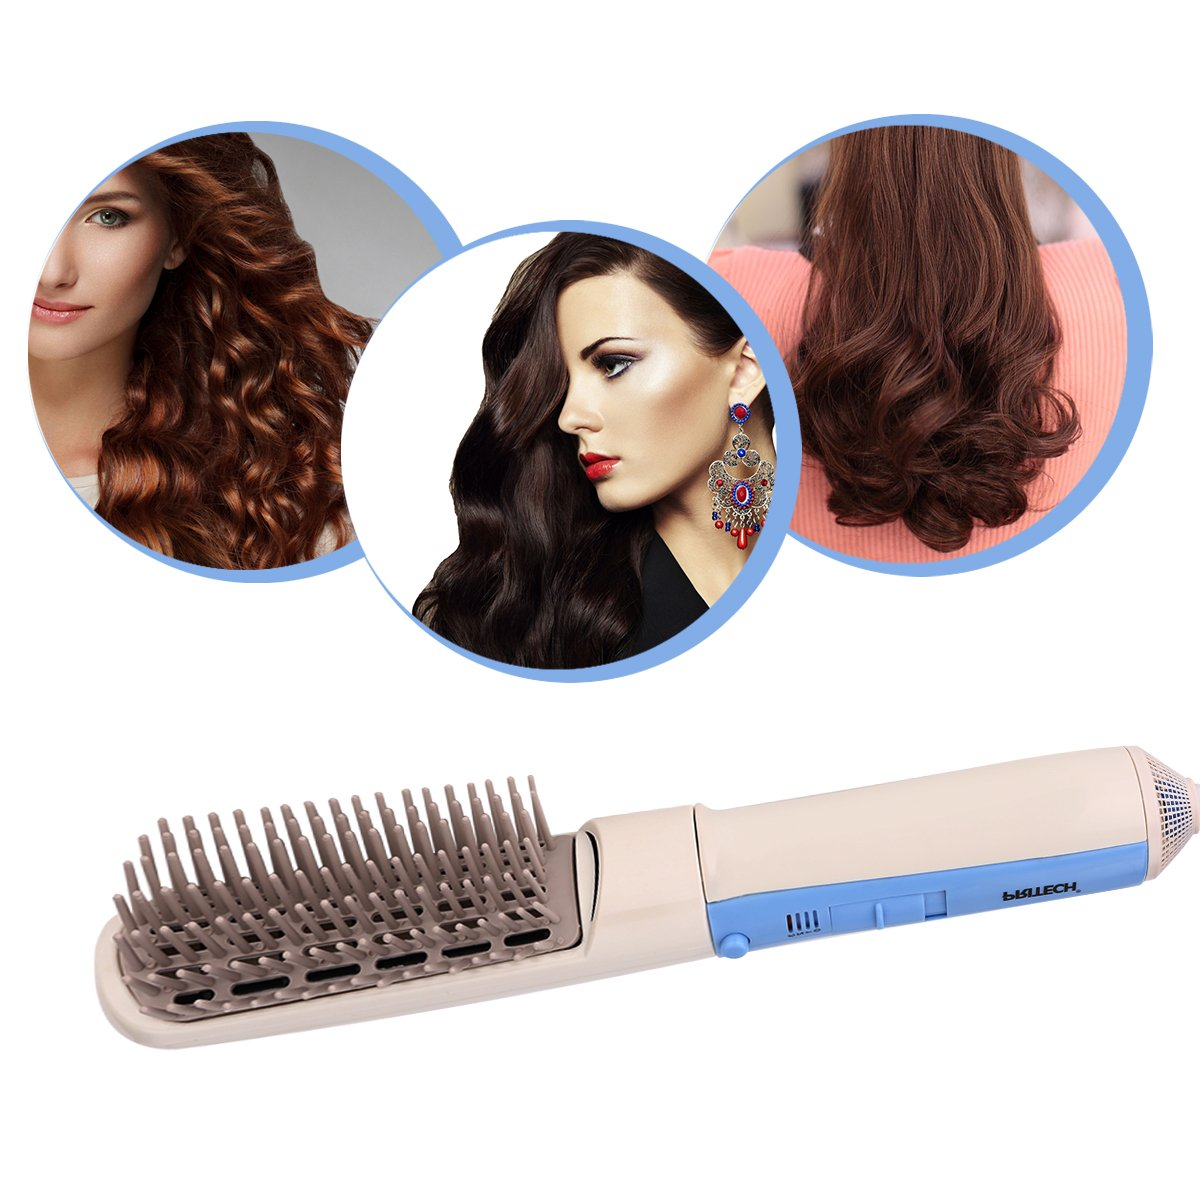 Babyliss brush and style kurze haare